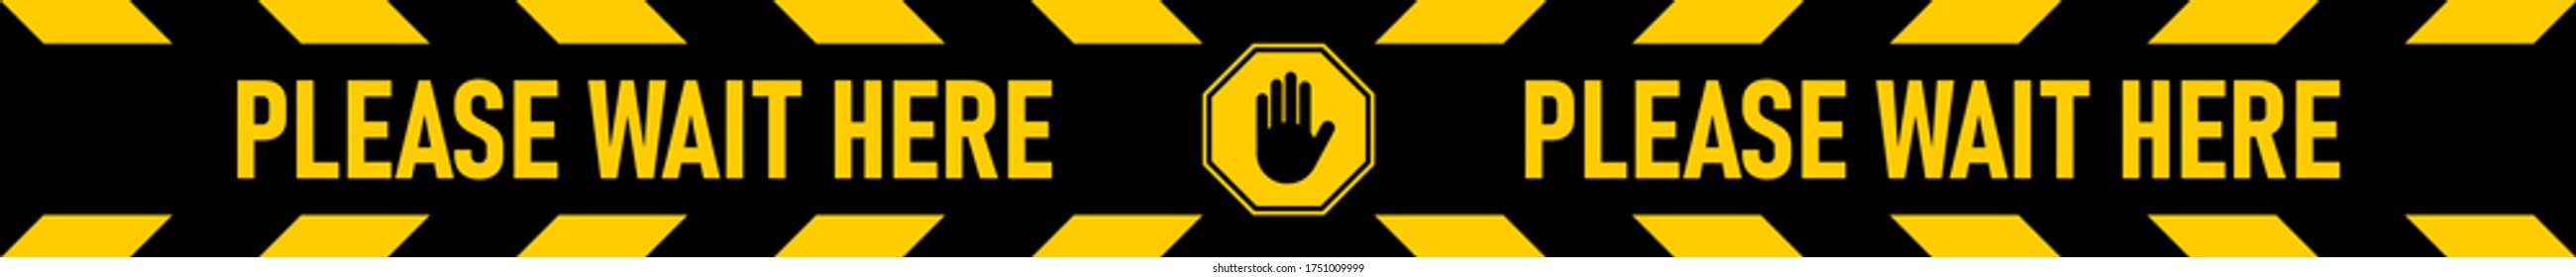 Please Wait Here Floor Marking Stripe Tape Sticker Icon with Stop Sign and an Aspect Ratio of 10:1. Vector Image.